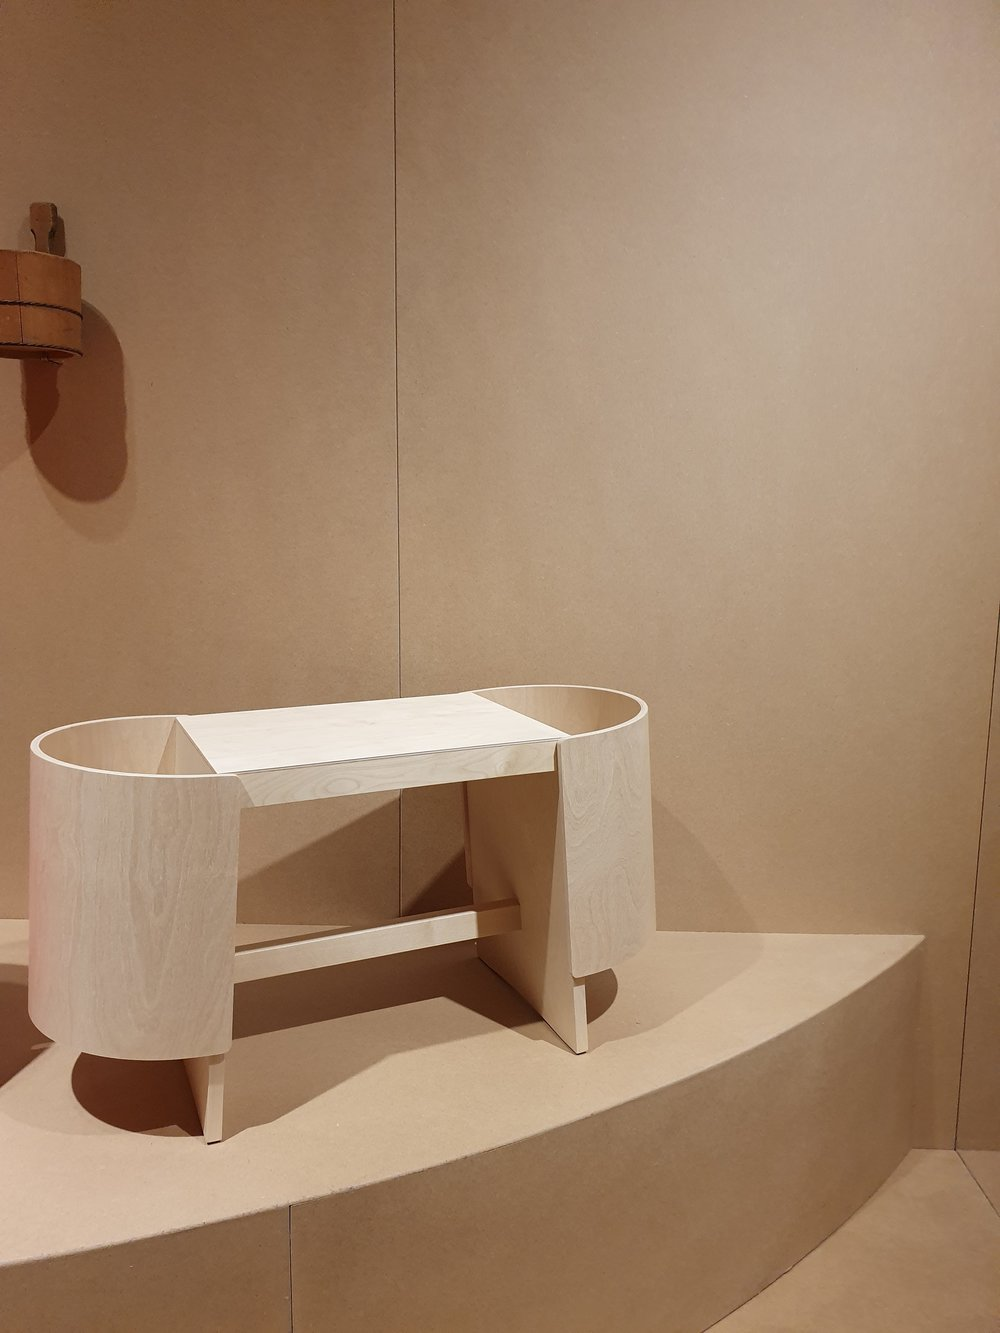 """""""Inspired by the public bathing cultures of both Finland and Japan, Kiulu Bench typifies the refinement and ability to create new archetypes for which designer Koichi Futatsumata is renowned. Public baths, as both social nexus and cleansing ritual, are deeply embedded in the cultural landscapes of both Finland and Japan, and this connection is taken as the designer's starting point. A cylindrically shaped bucket, Kiulu in Finnish, is traditionally used in public baths of both countries and stands at the origin of Futatsumata's bench design. Kiulu Bench serves several functions - as seat and basket, offering storage for items such as towels and cosmetics, magazines or toys. Embodying Futatsumata's concern with material and eye for detail, Kiulu Bench can find its application in the dry surroundings of the bath/spa/wellness area and beyond."""